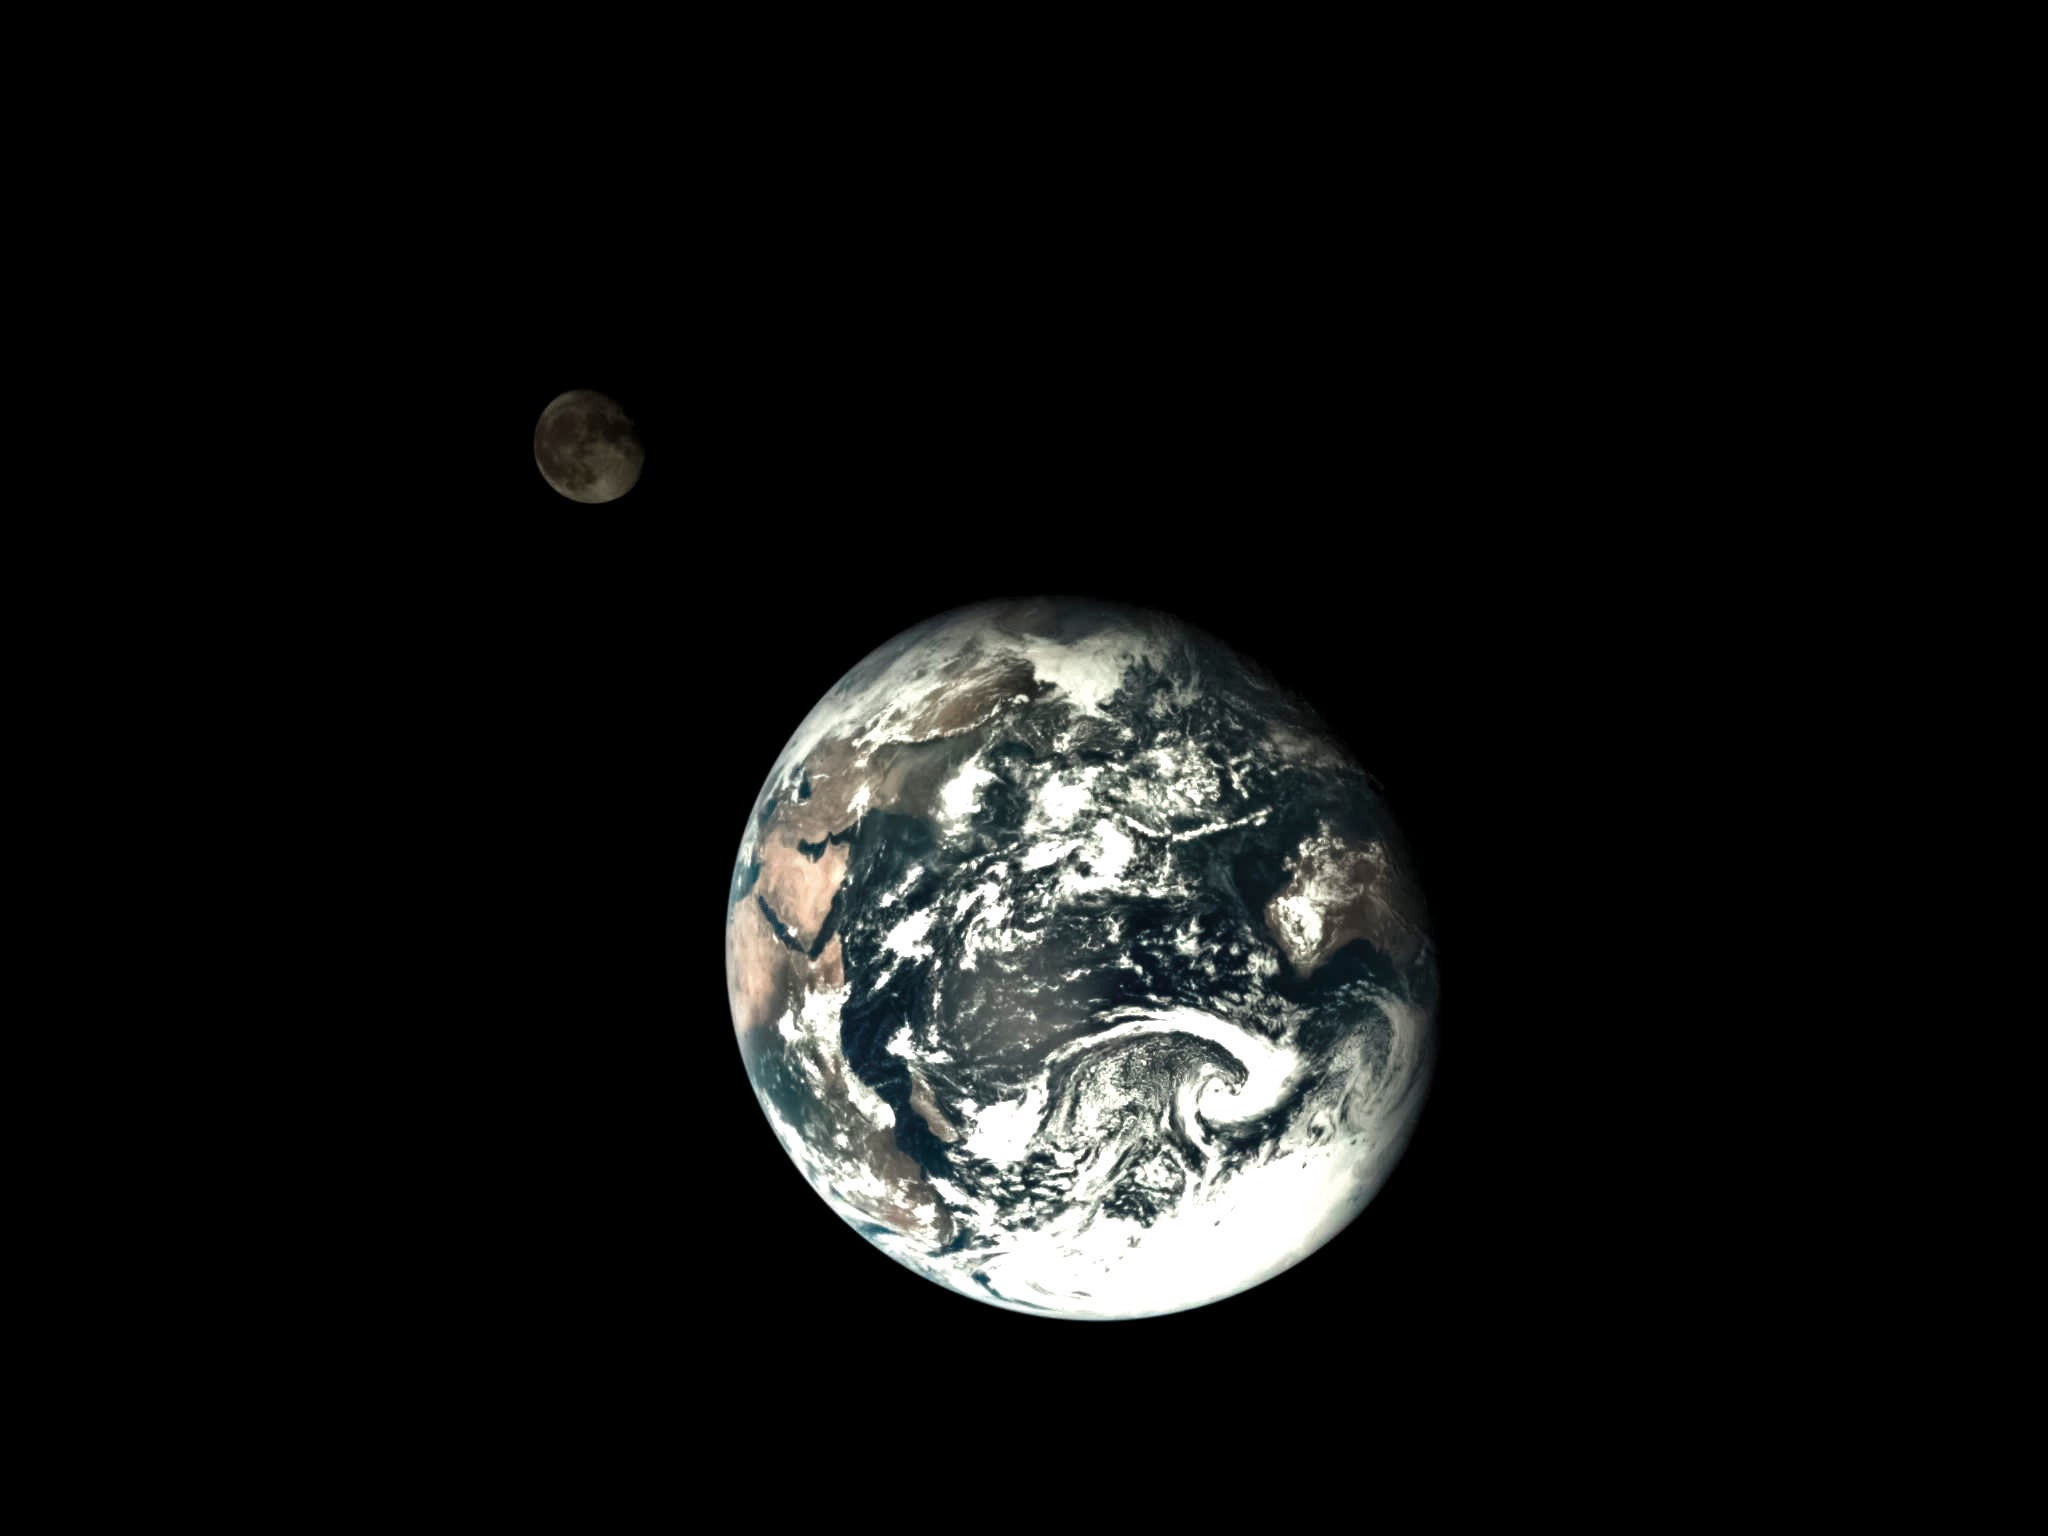 A cool image of the Moon orbiting Earth taken from outer space